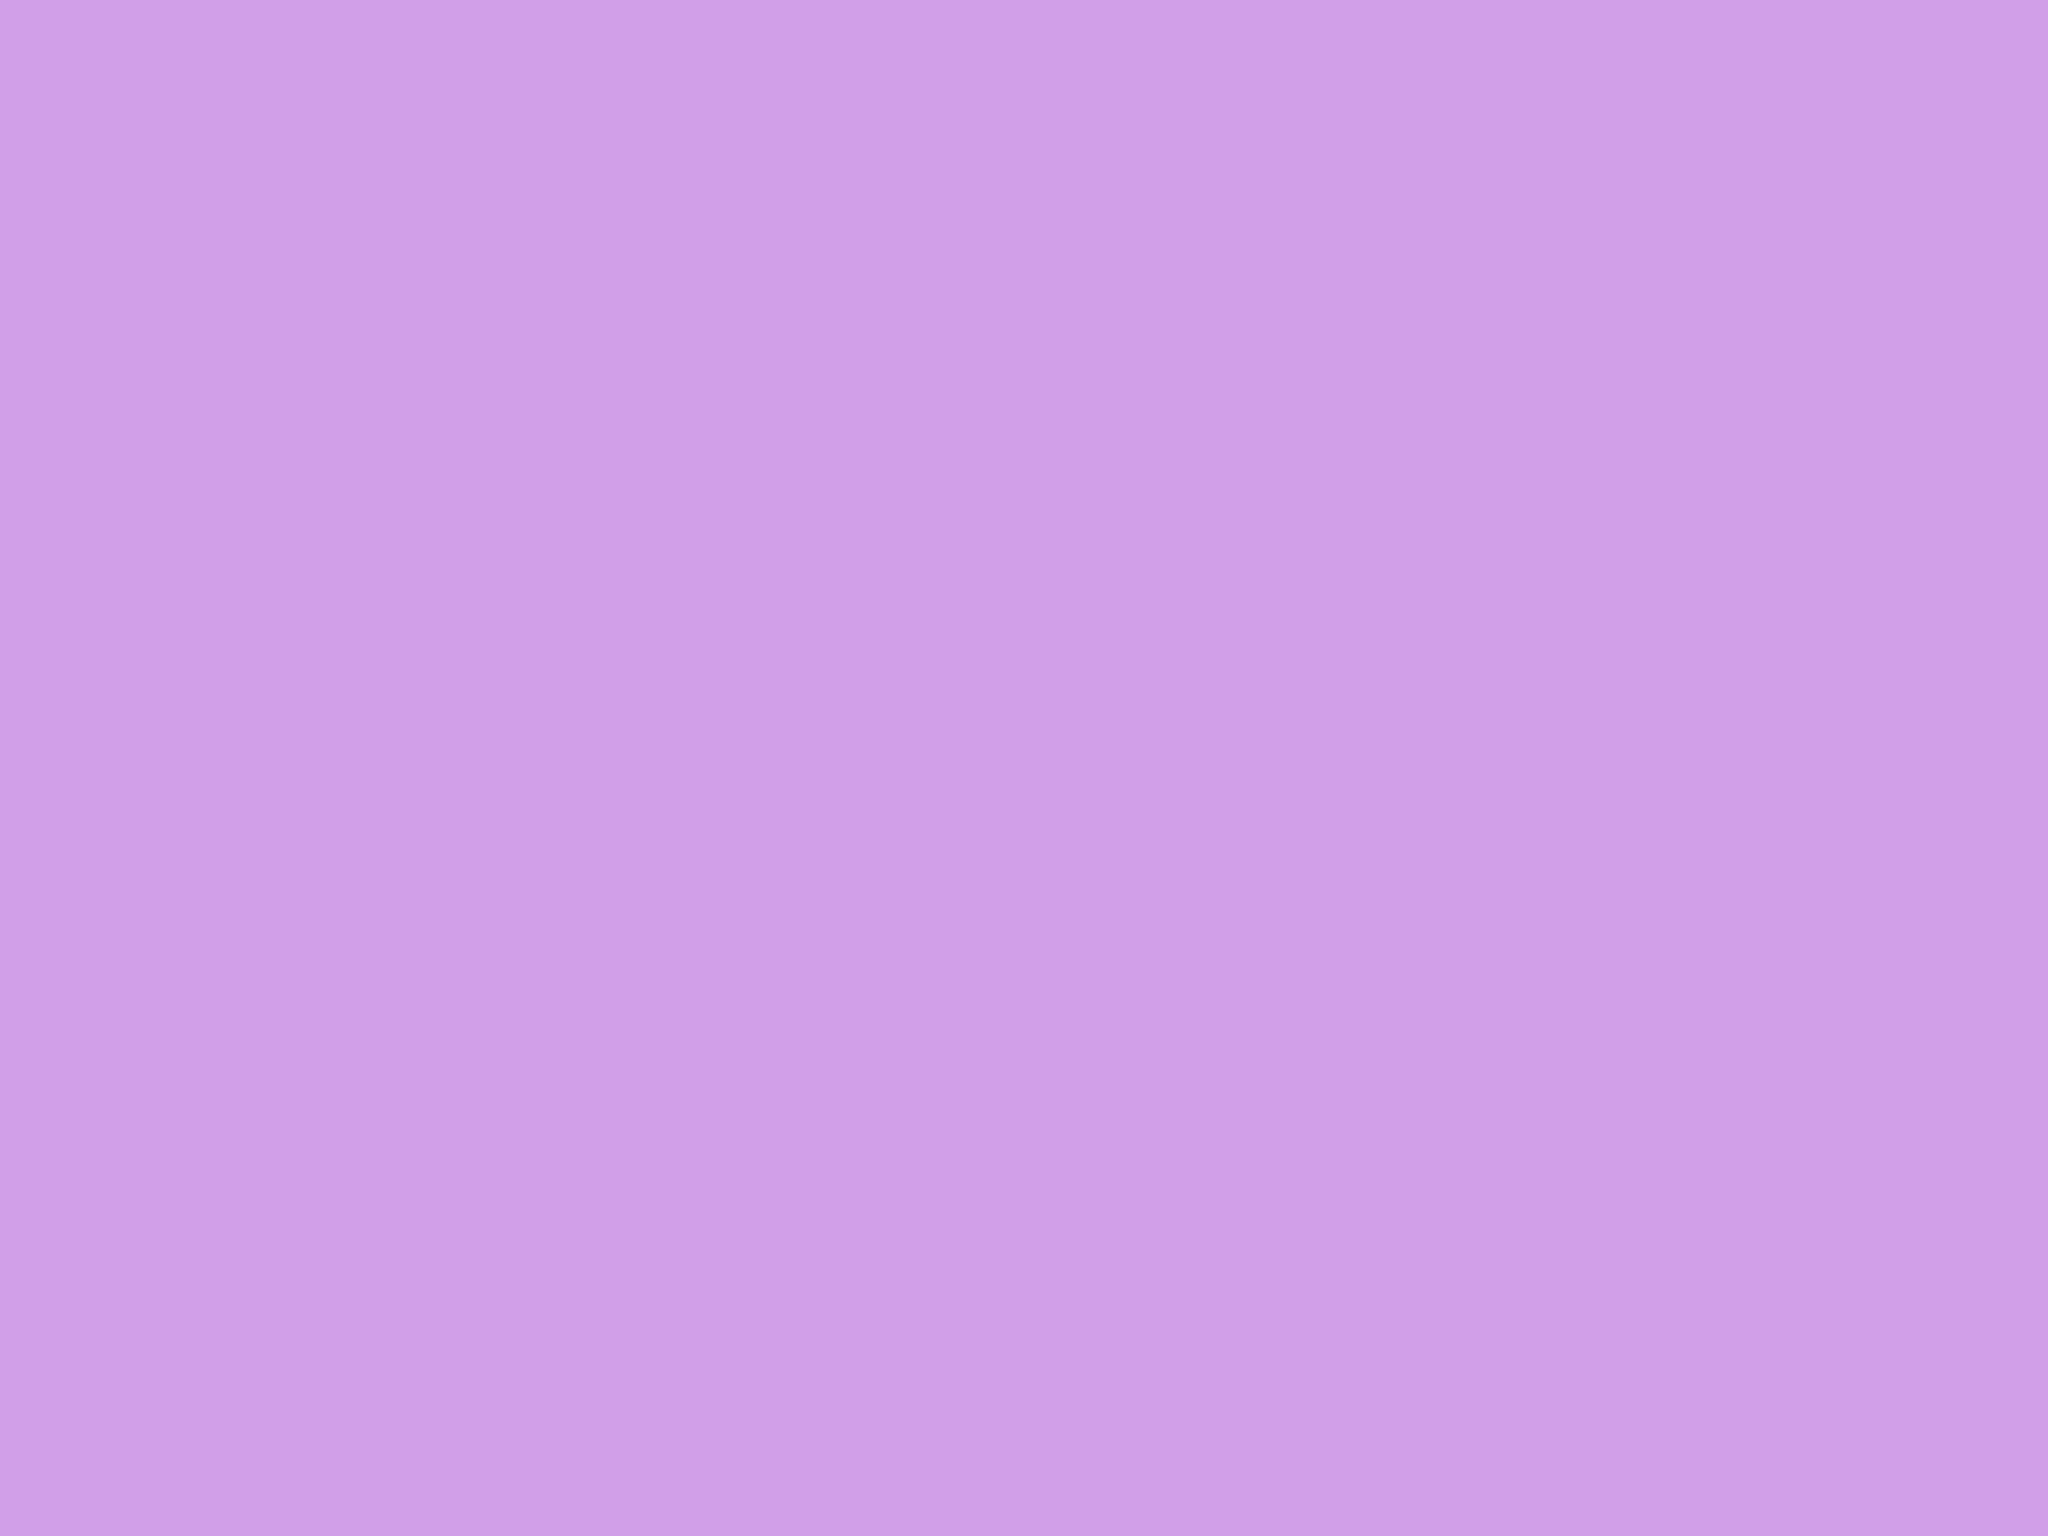 2048x1536 Bright Ube Solid Color Background